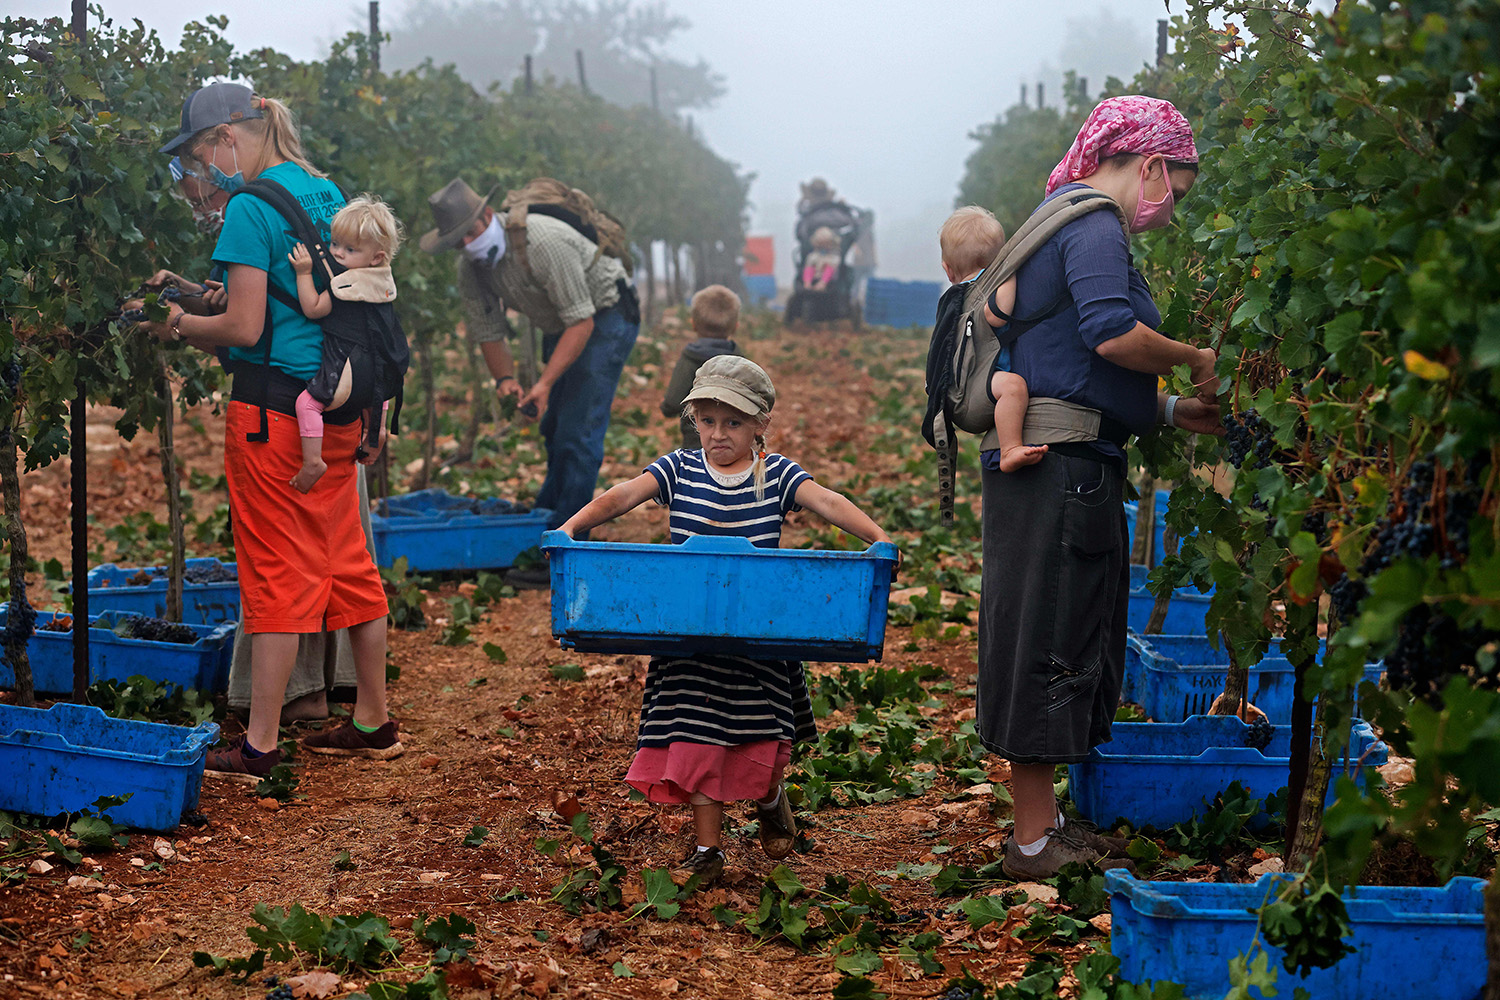 Evangelist Christian volunteers harvest merlot wine grapes for the Israeli family-run Tura Winery in the estate's vineyards in the occupied West Bank Har Bracha settlement on Sept. 23. MENAHEM KAHANA/AFP via Getty Images